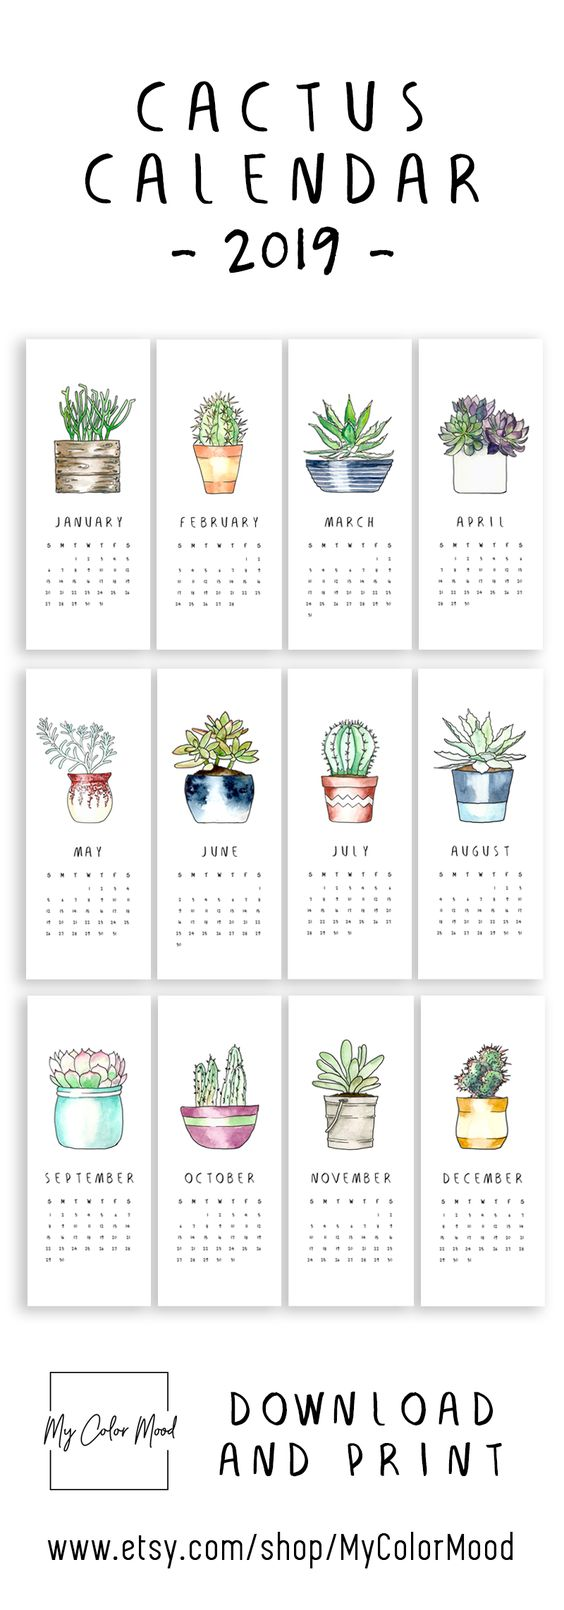 Modern cactus calendar 2019 for all the succulent lovers! These small printable calendar pages will be an original decor accent for your home or office! 🌵HOW TO USE THIS CALENDAR? 1) Use a washi tape to stick it to the wall 2) Use a magnet & put it onto a magnetic board 3) Use a pin & pin it on a cork board 4) Use a clothespin, hang it on a string and make a hanging calendar 5) Use a clip to hold all the pages together and use it as a desk calendar